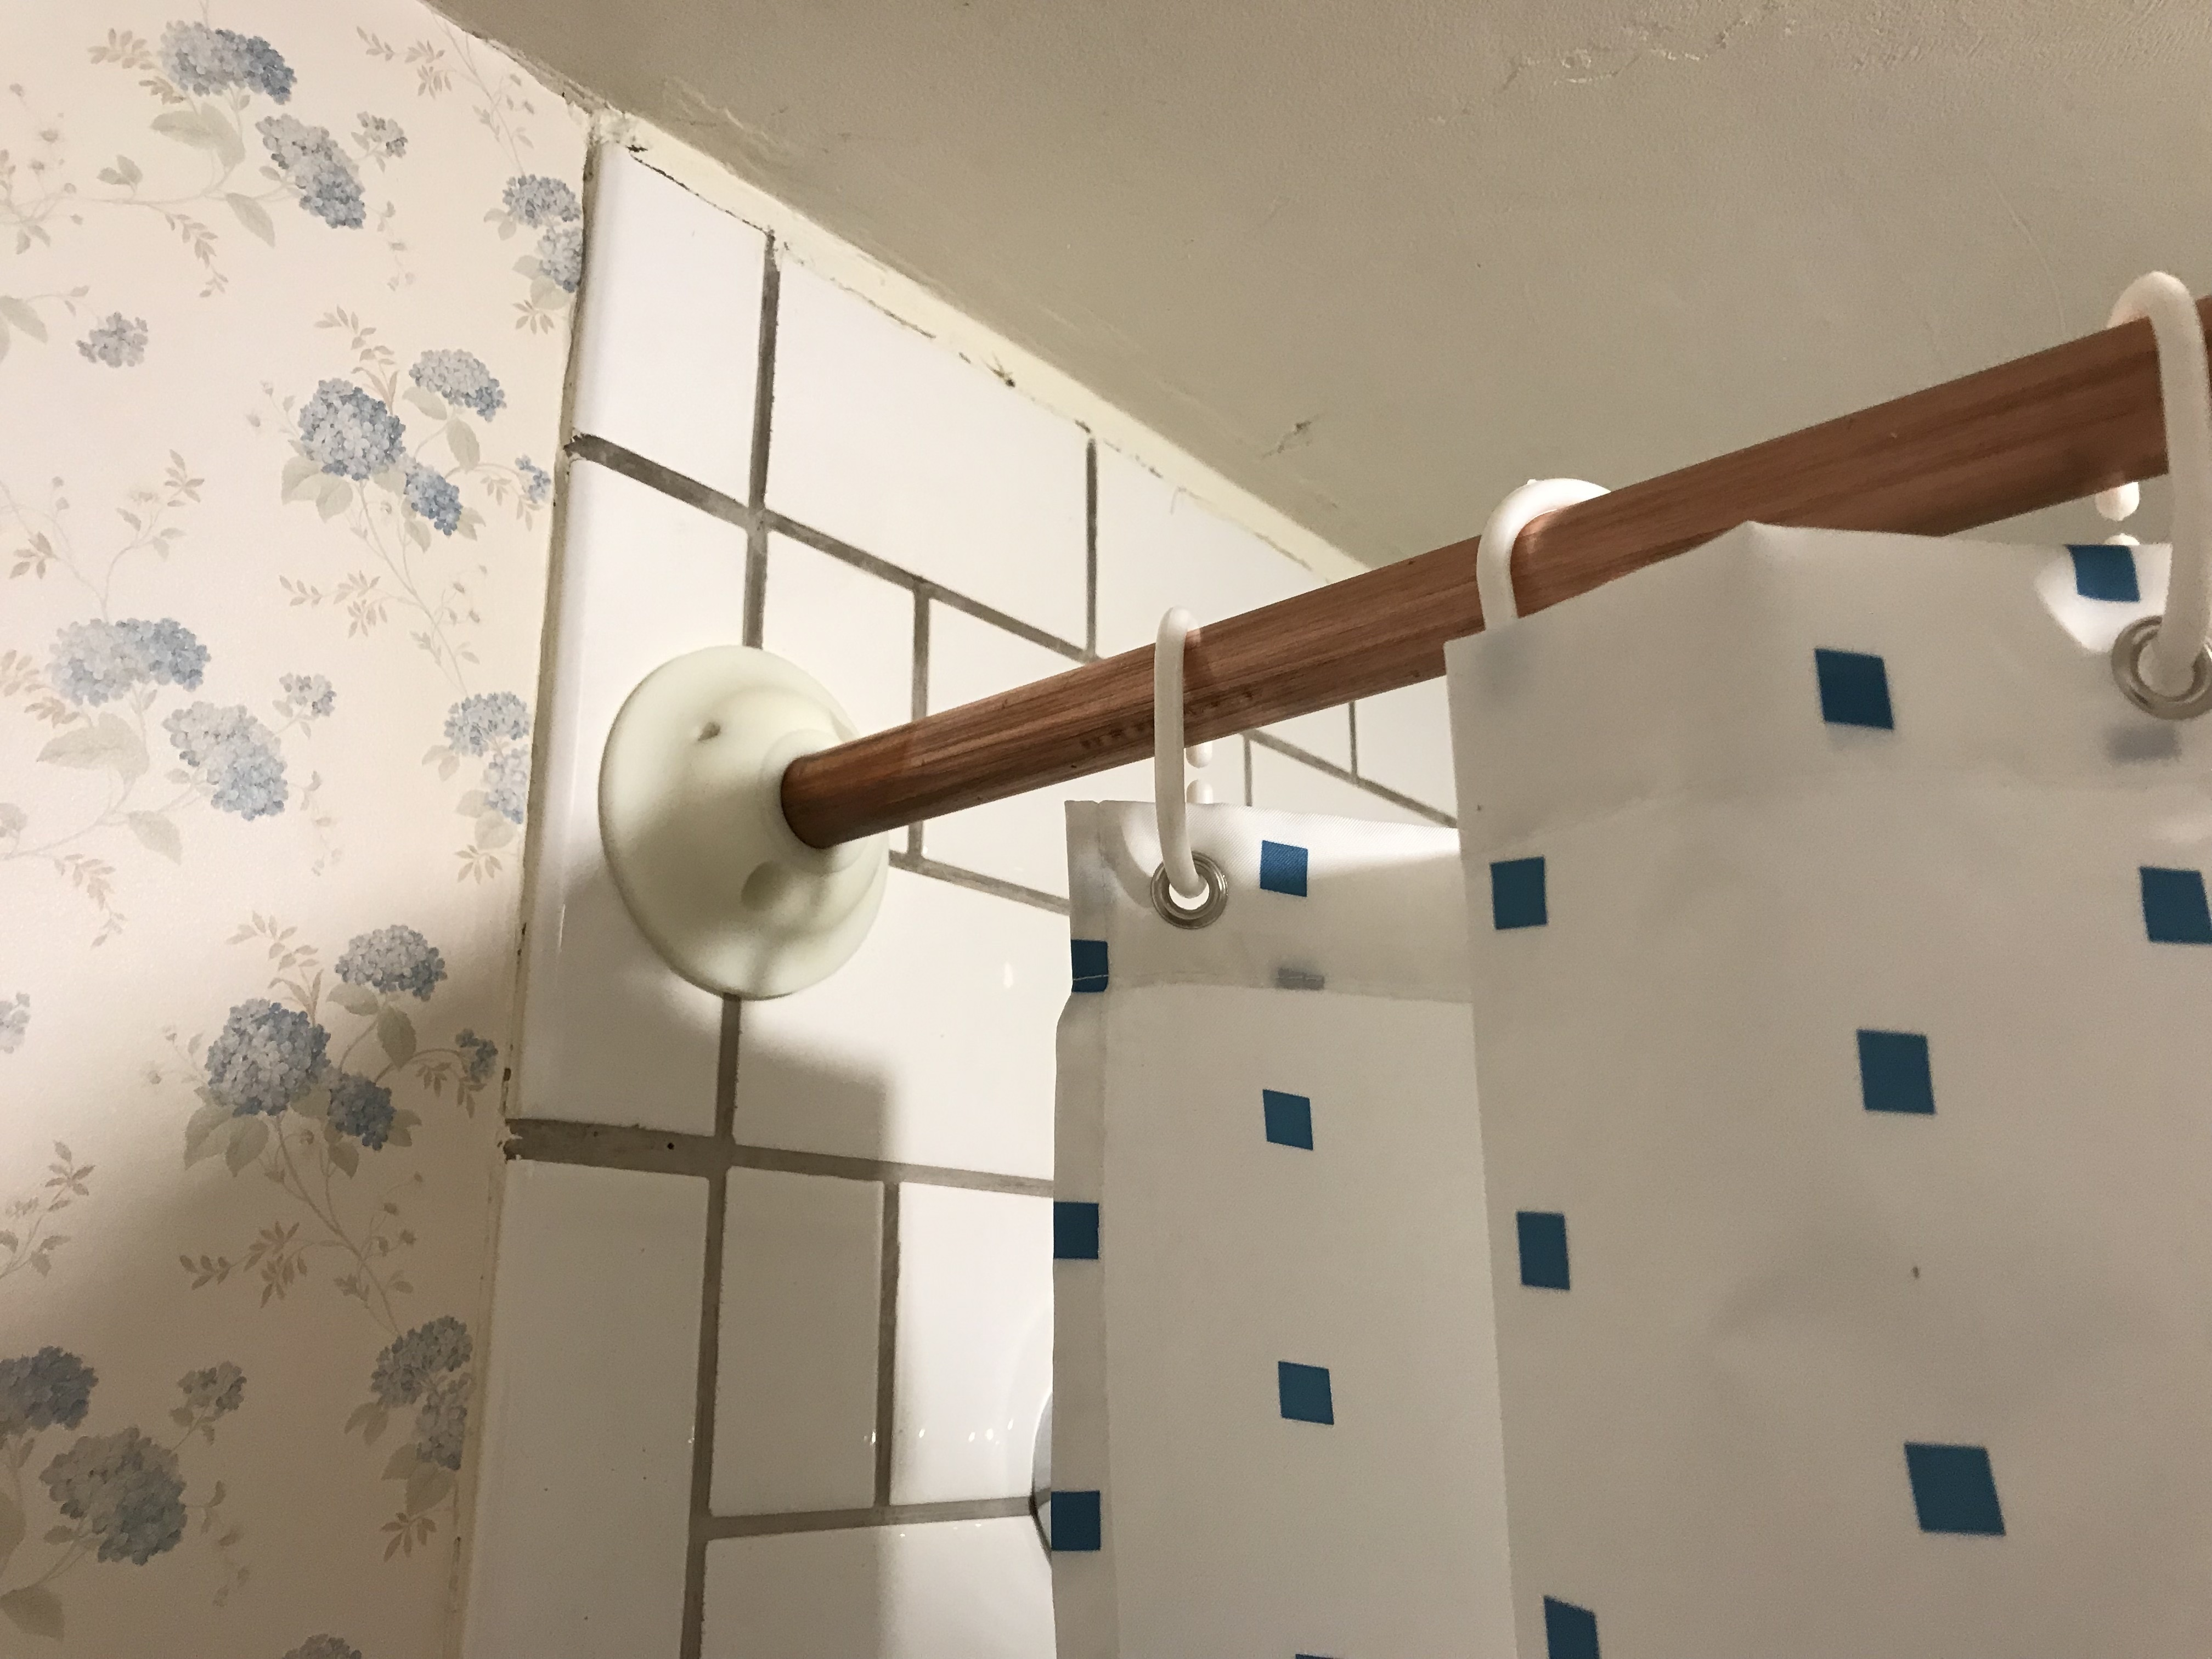 3d printed shower curtain rod mounting